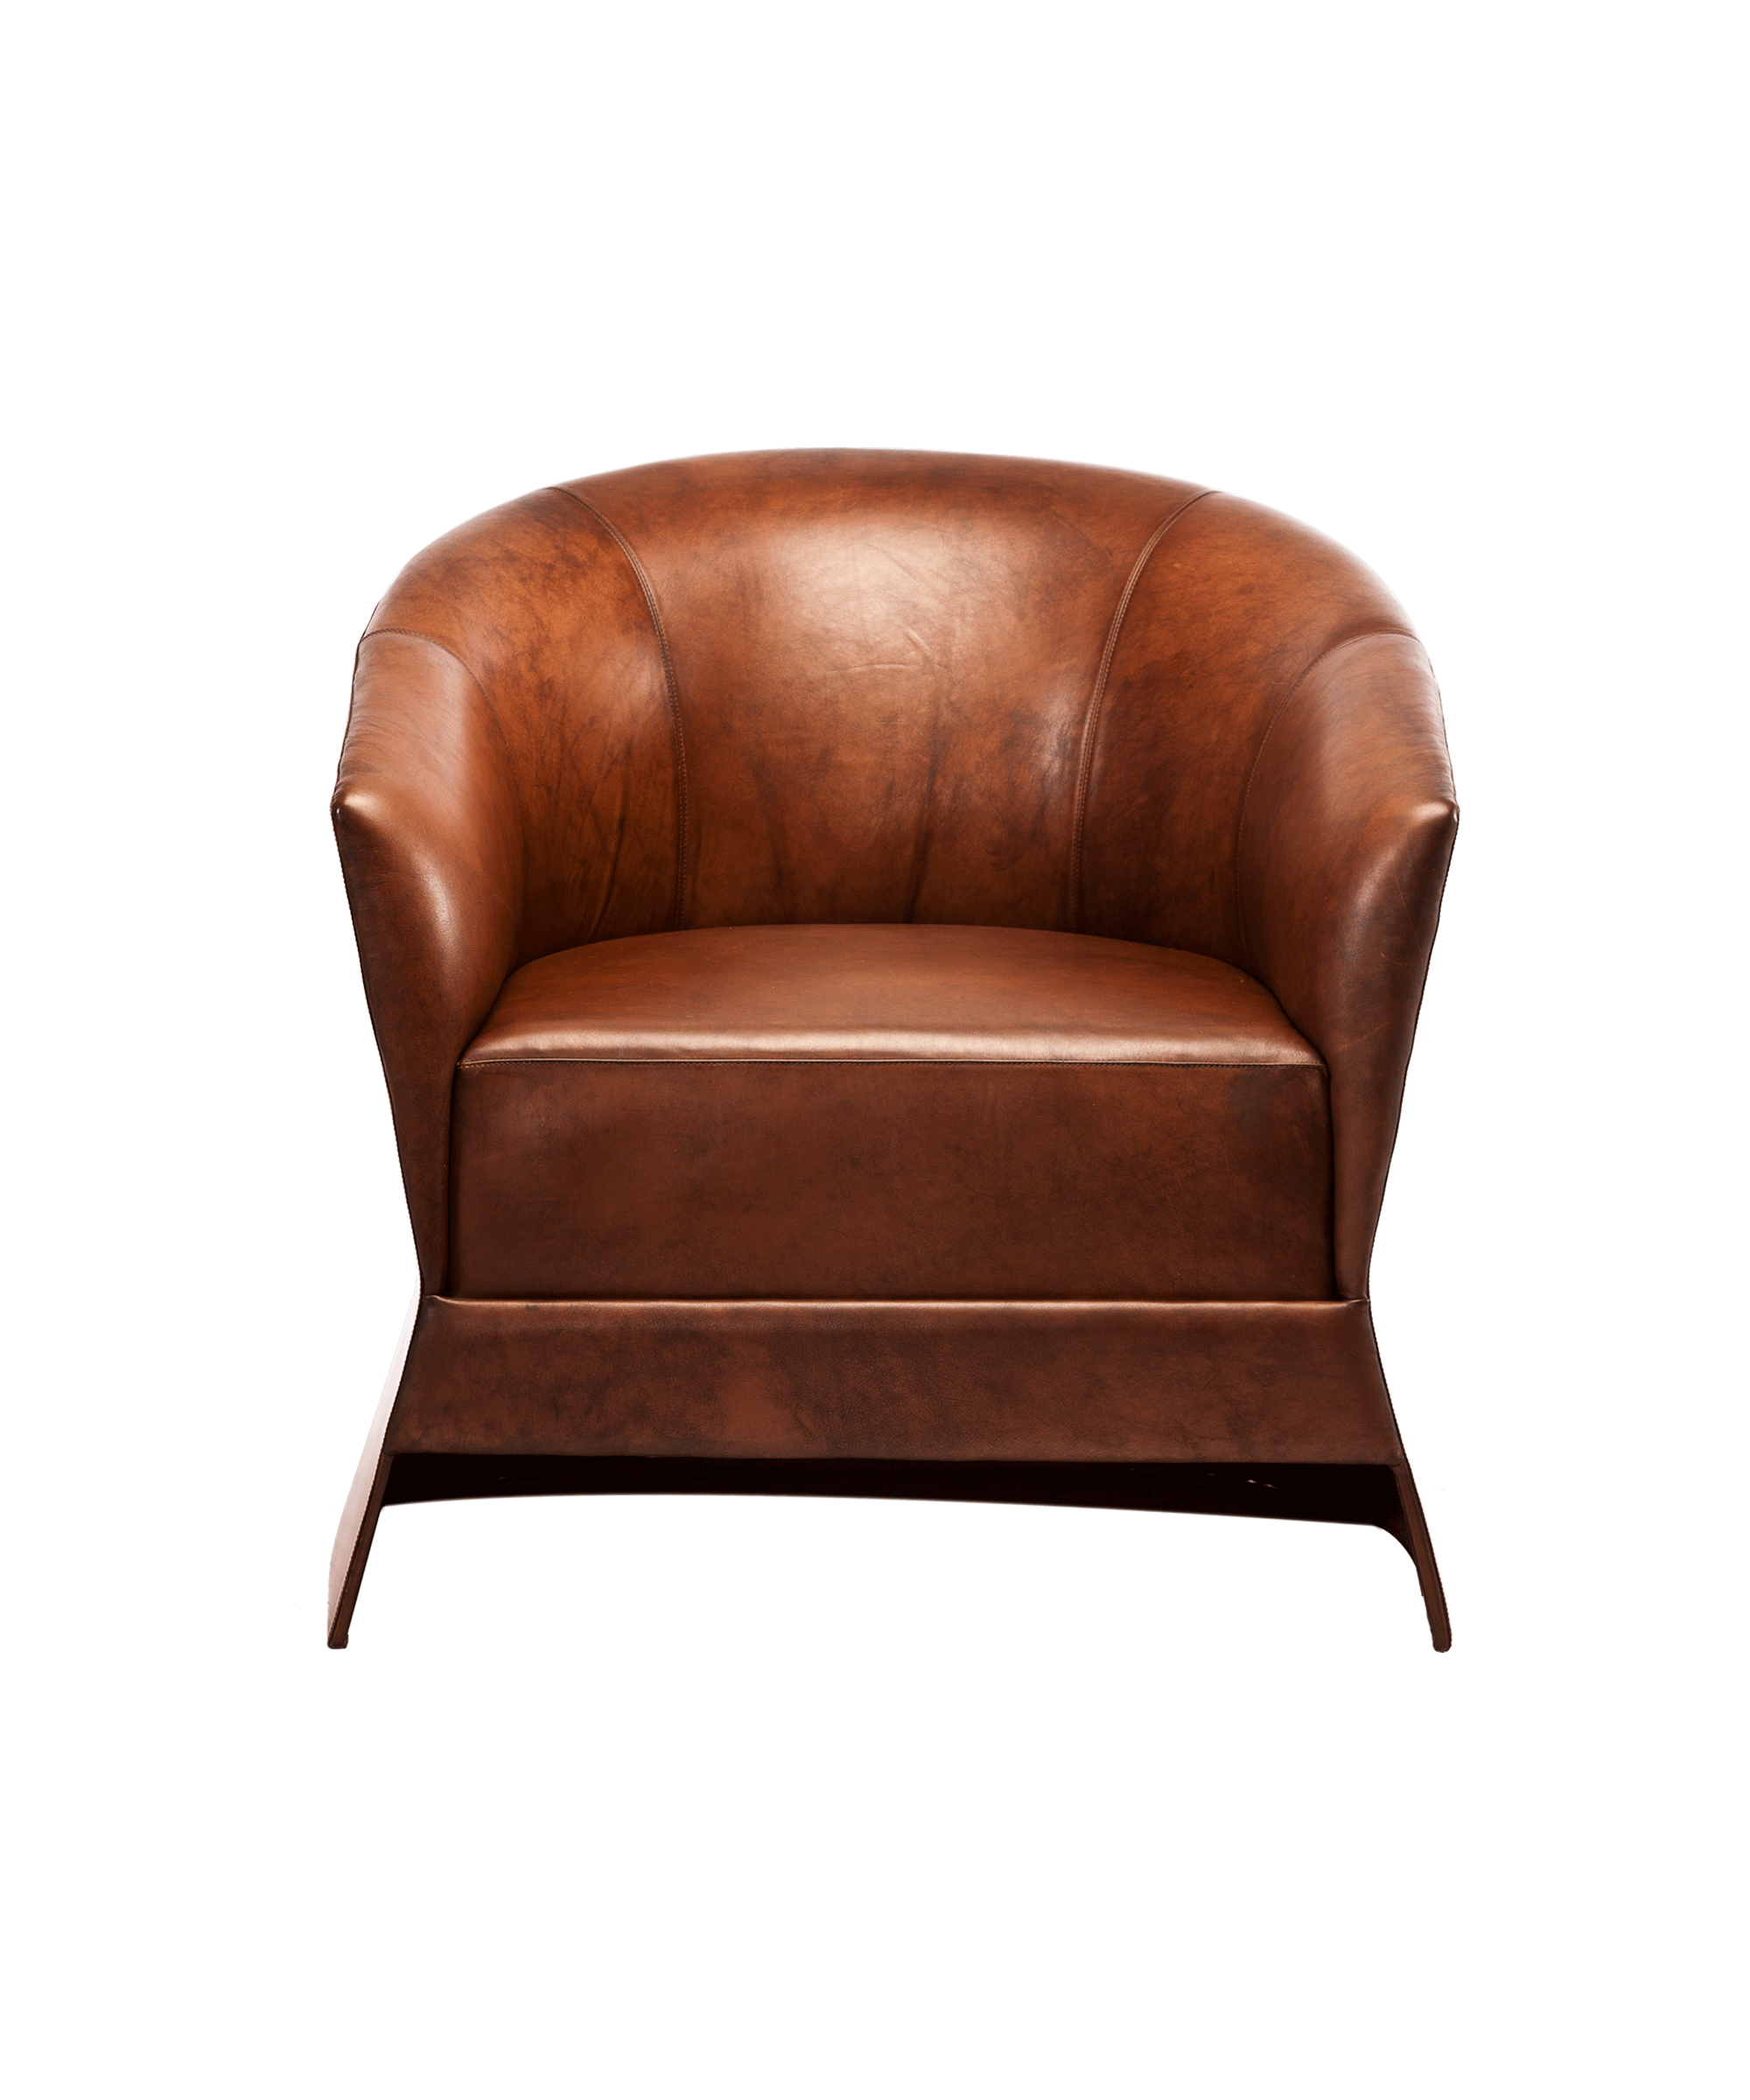 Single Sofa Png 2 Png Image